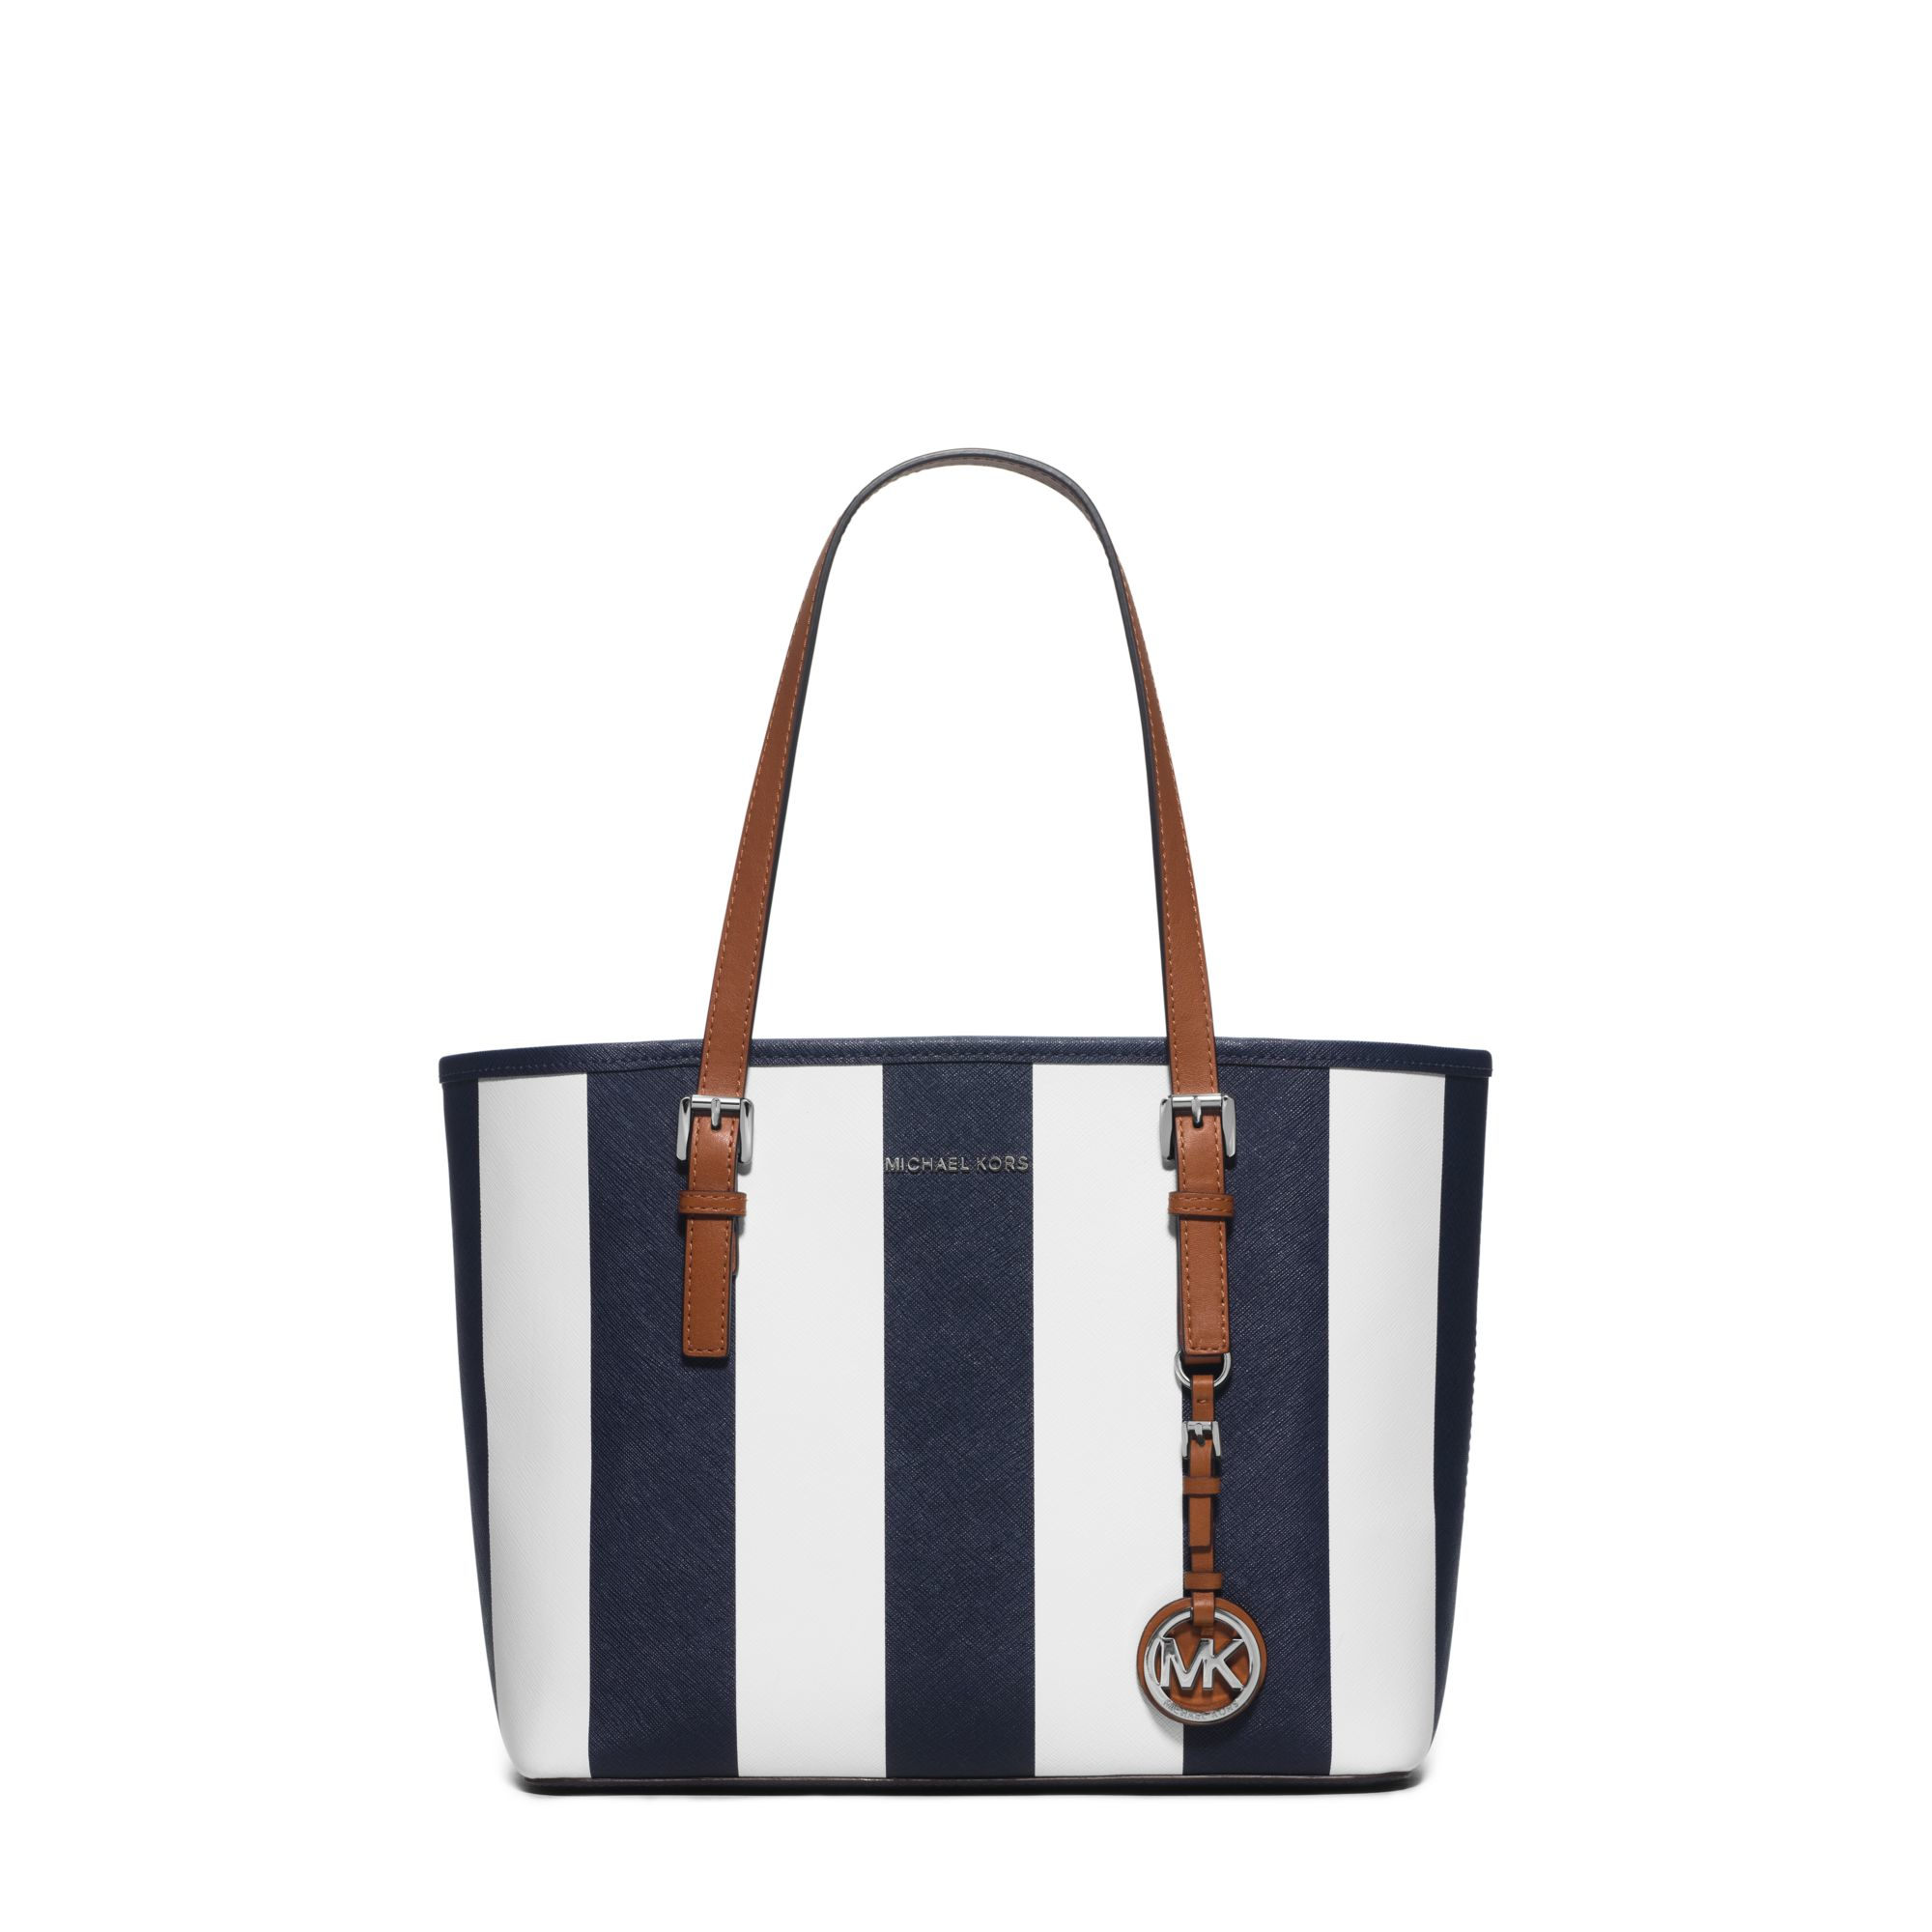 92df46825424b2 Michael Kors Jet Set Travel Small Saffiano Leather Tote in Blue - Lyst